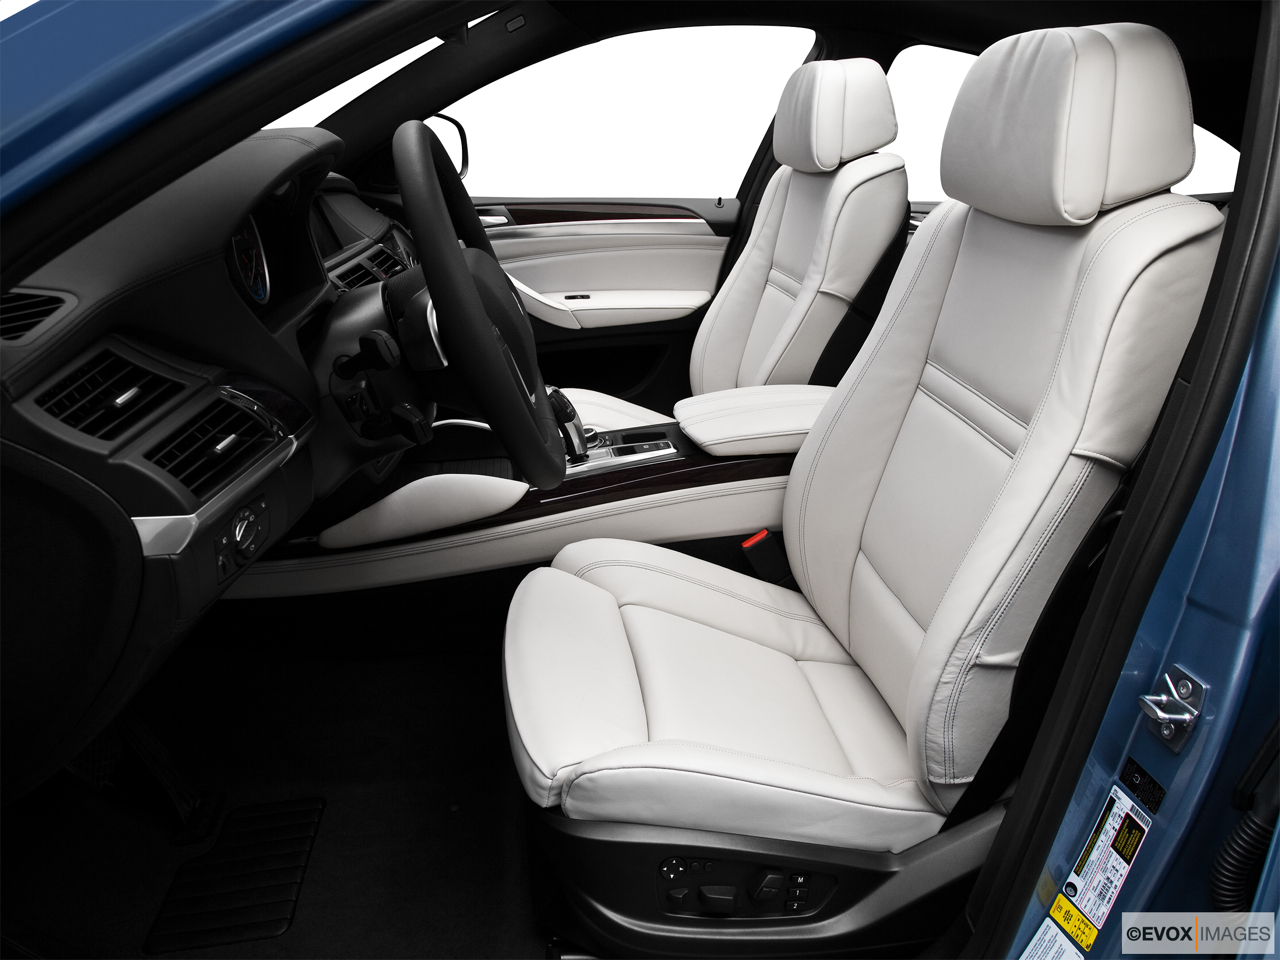 2010 BMW X6 Hybrid Base Front seats from Drivers Side.